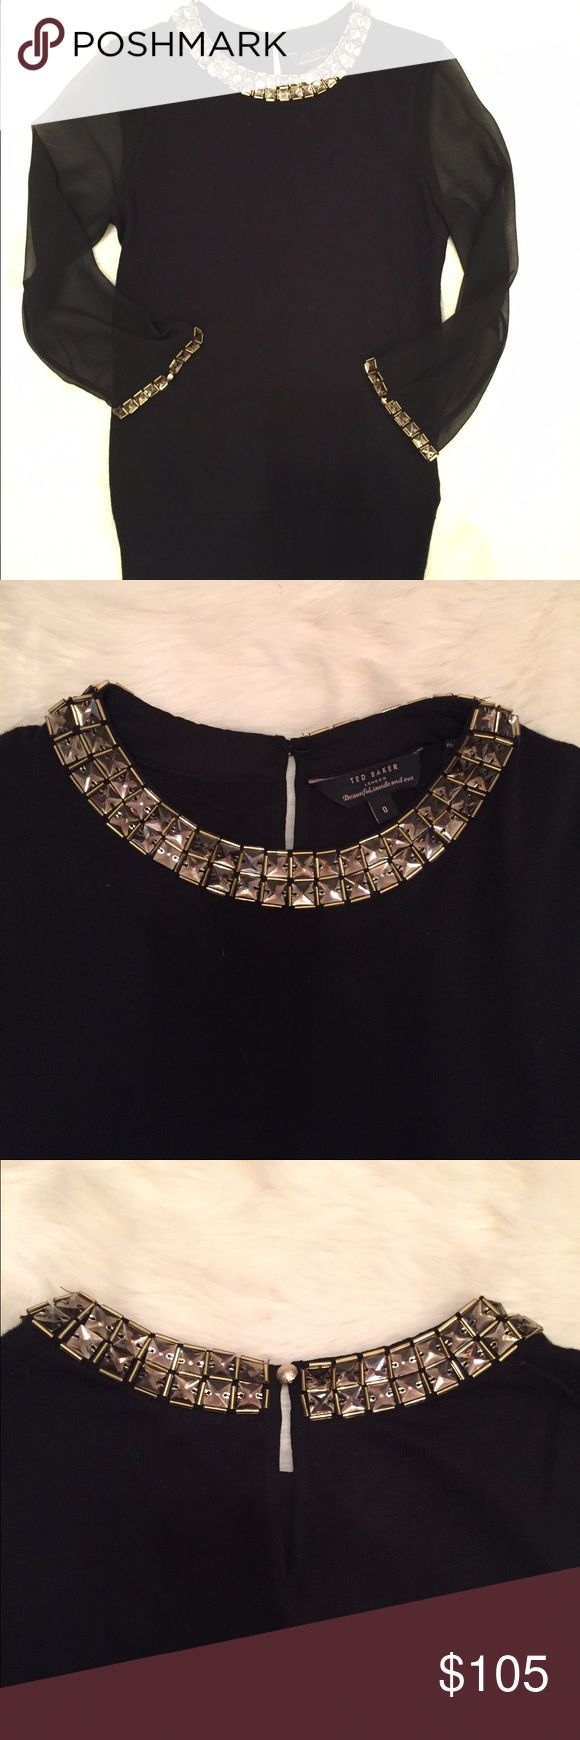 Ted Baker London Blouse NWOT. Size 0/ fits US size 2. Beautiful embellished neckline and wrist. Silk sleeves. Ted Baker London Tops Blouses